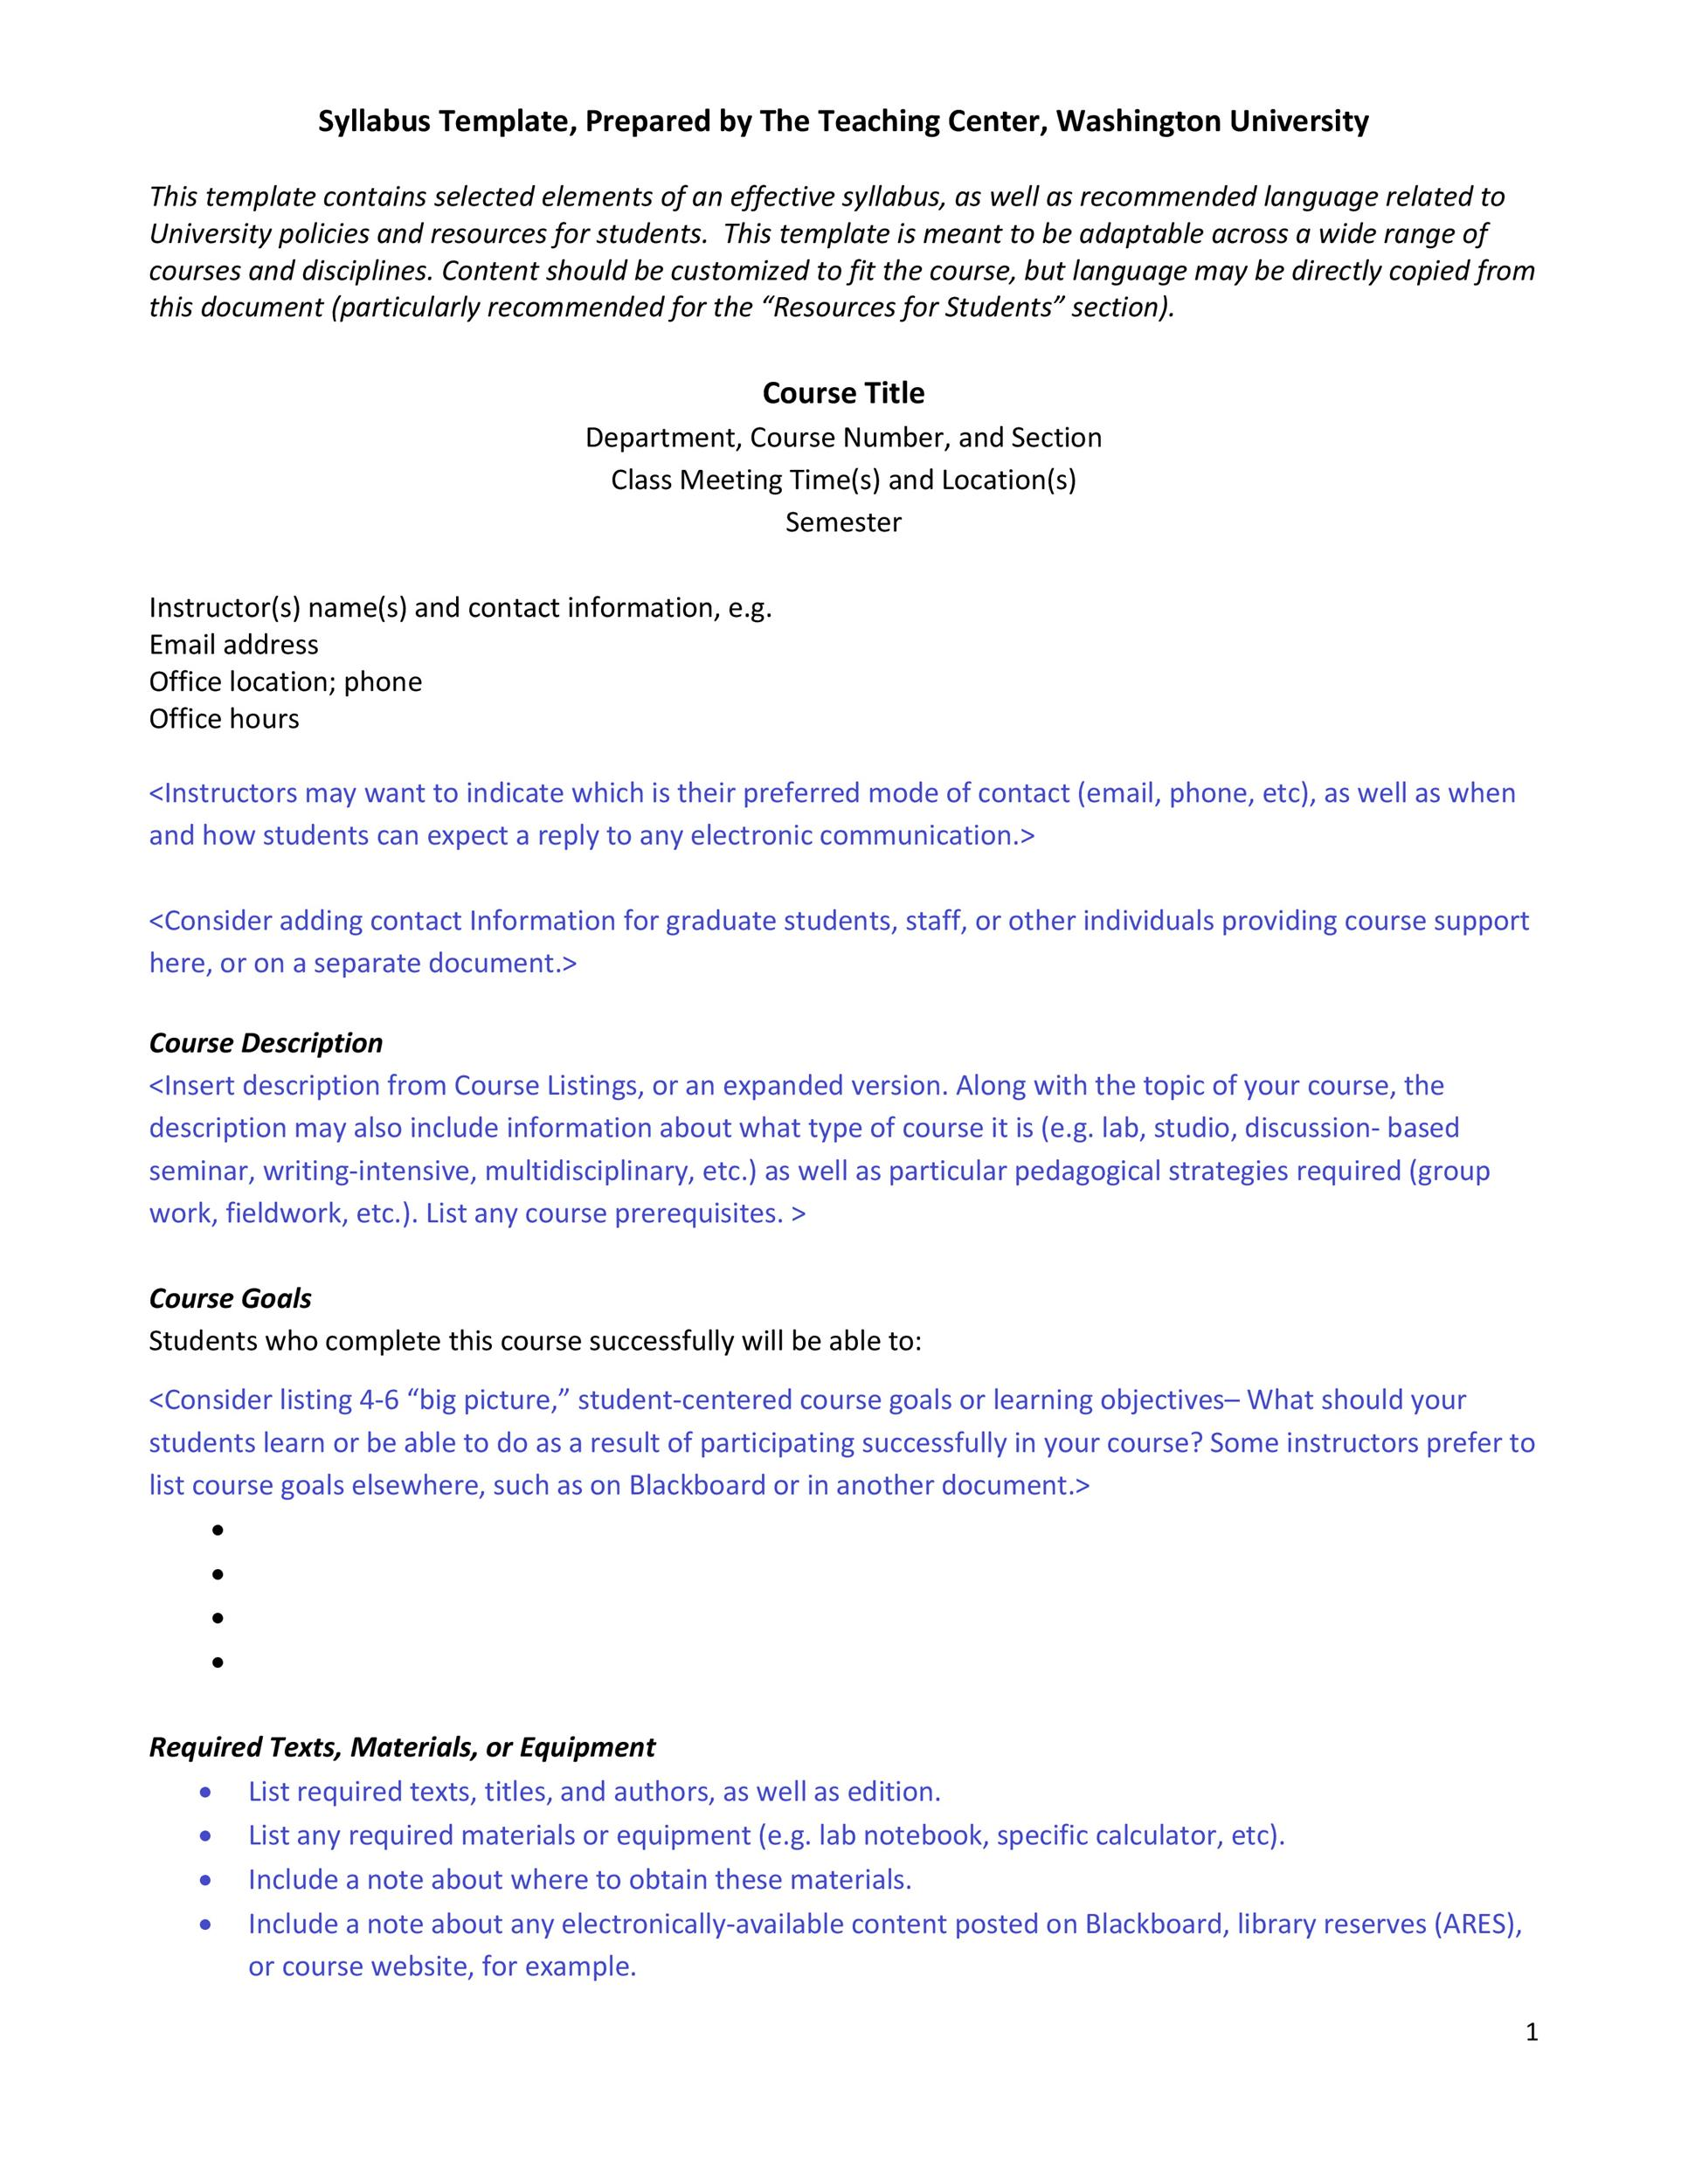 47 Editable Syllabus Templates Course Syllabus ᐅ Template Lab